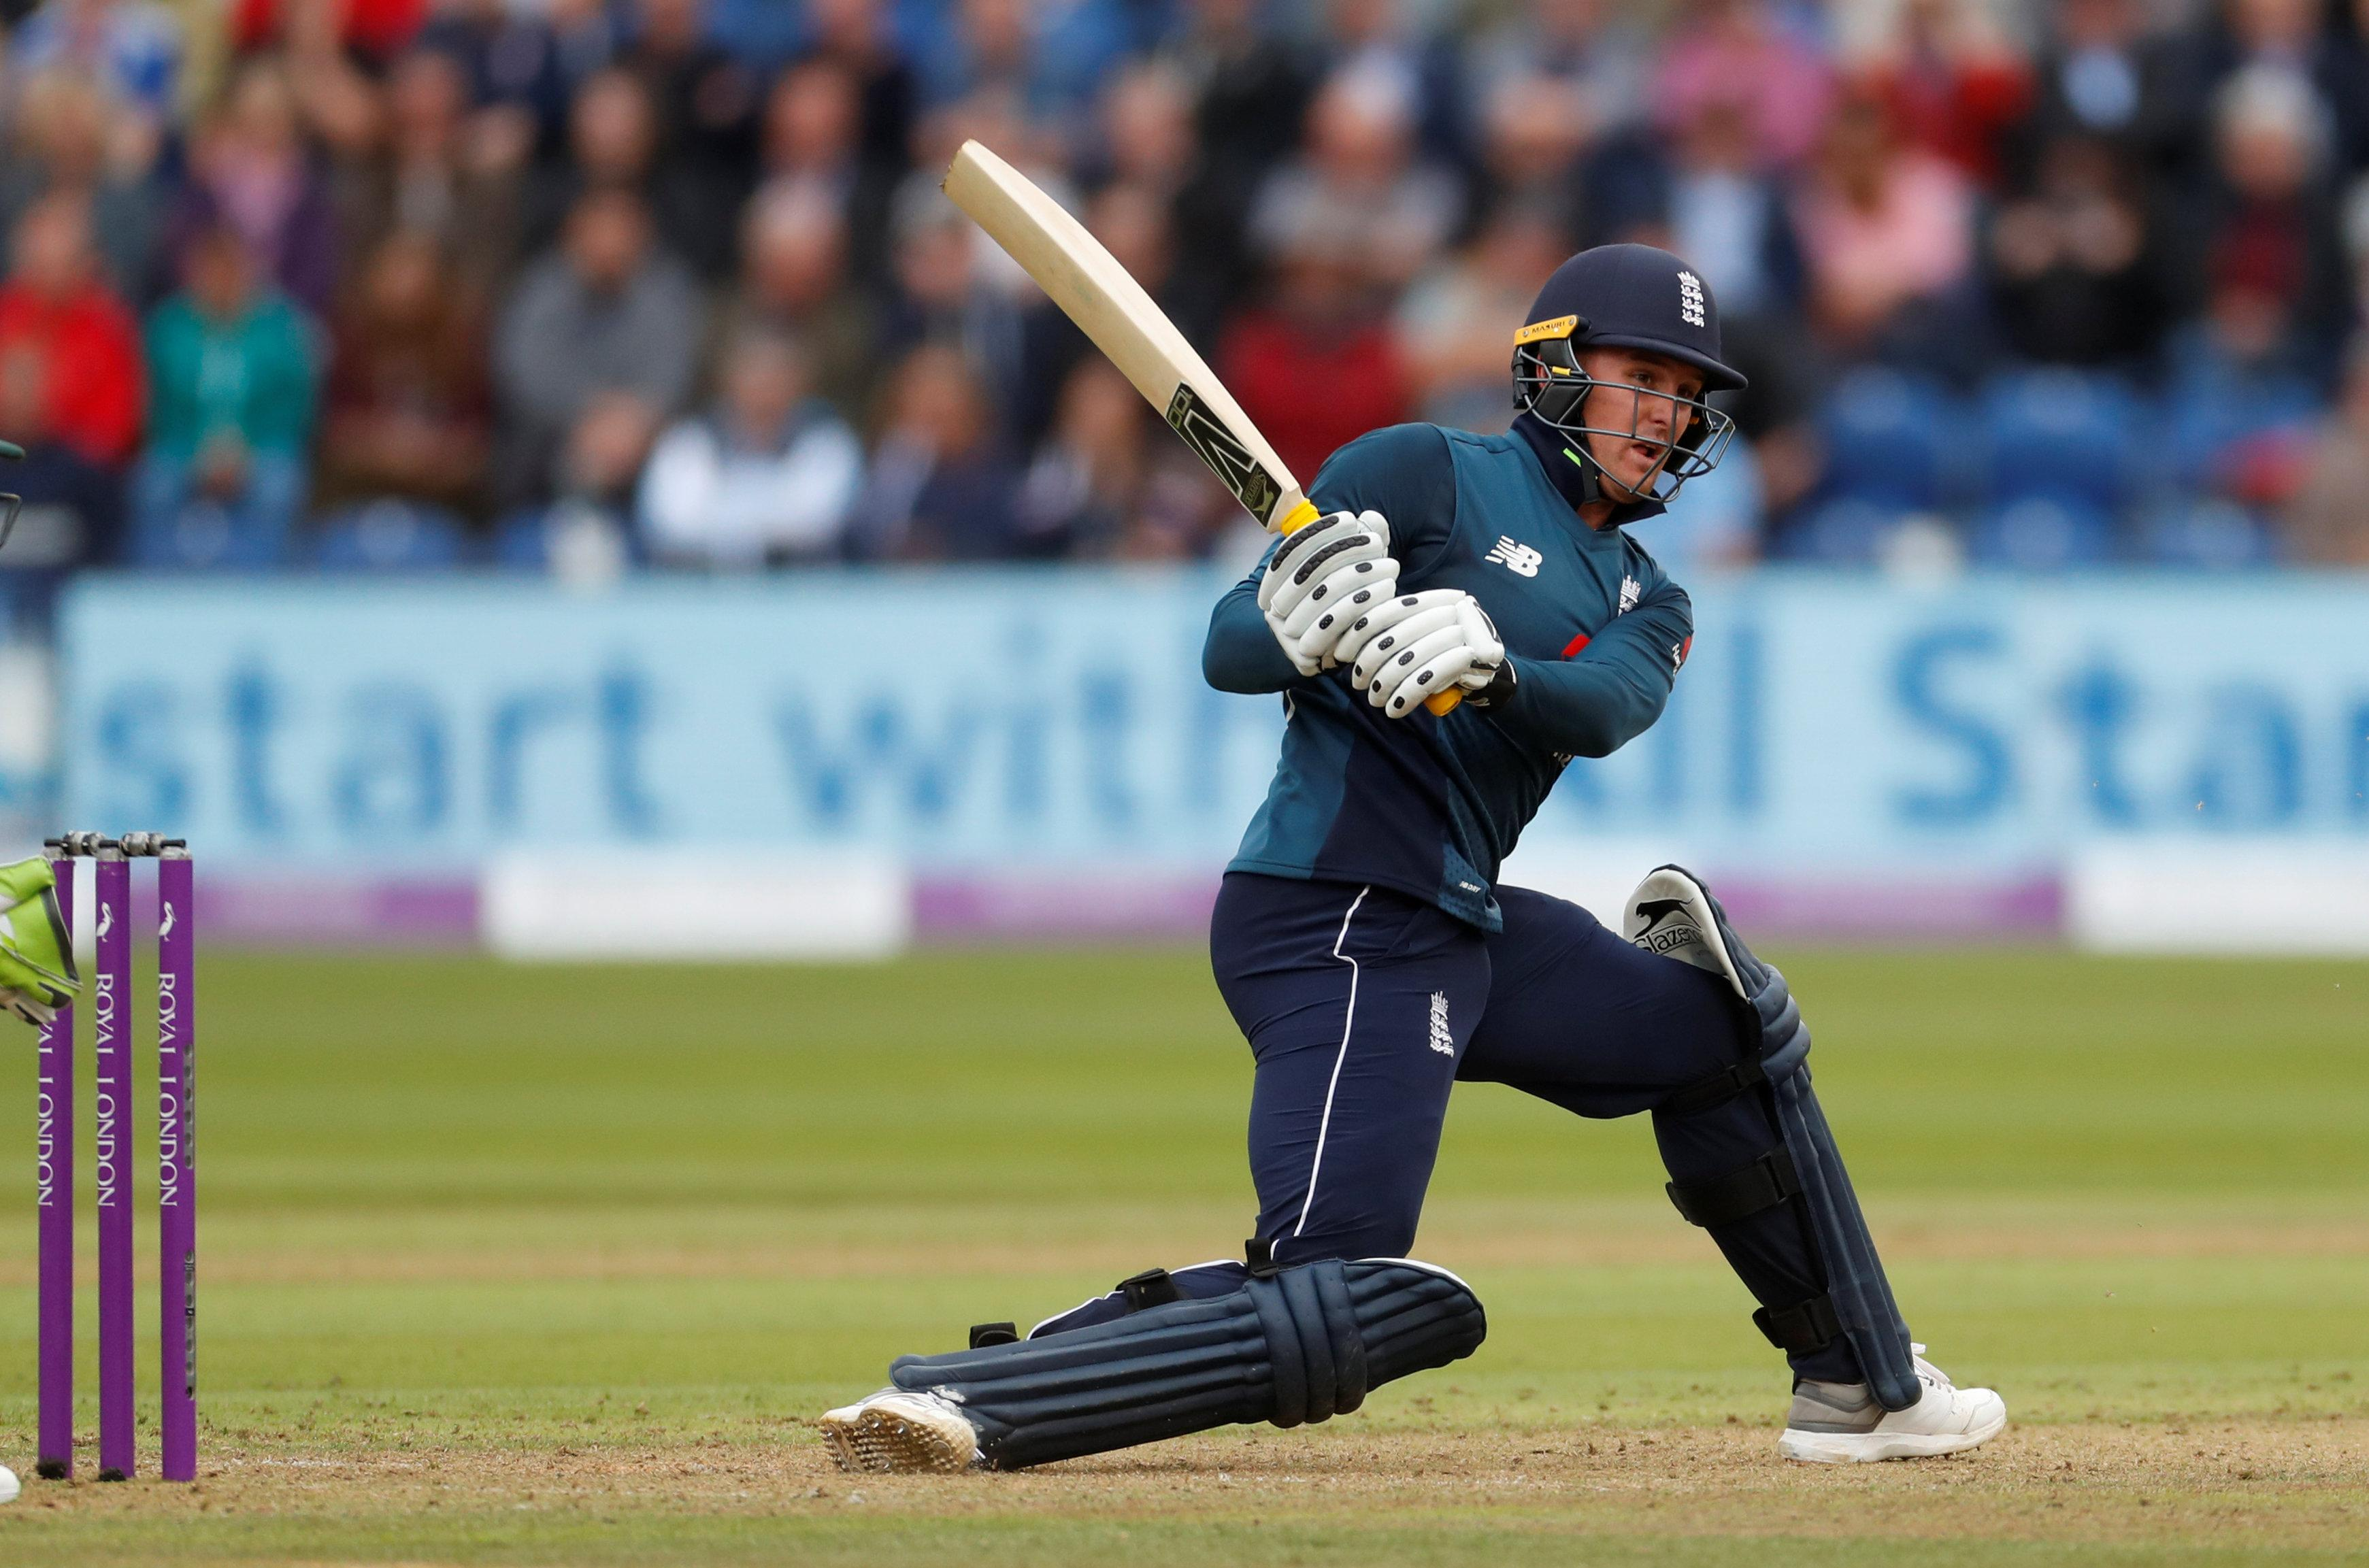 Jason Roy hit 120 from 108 deliveries as England reached 342-8